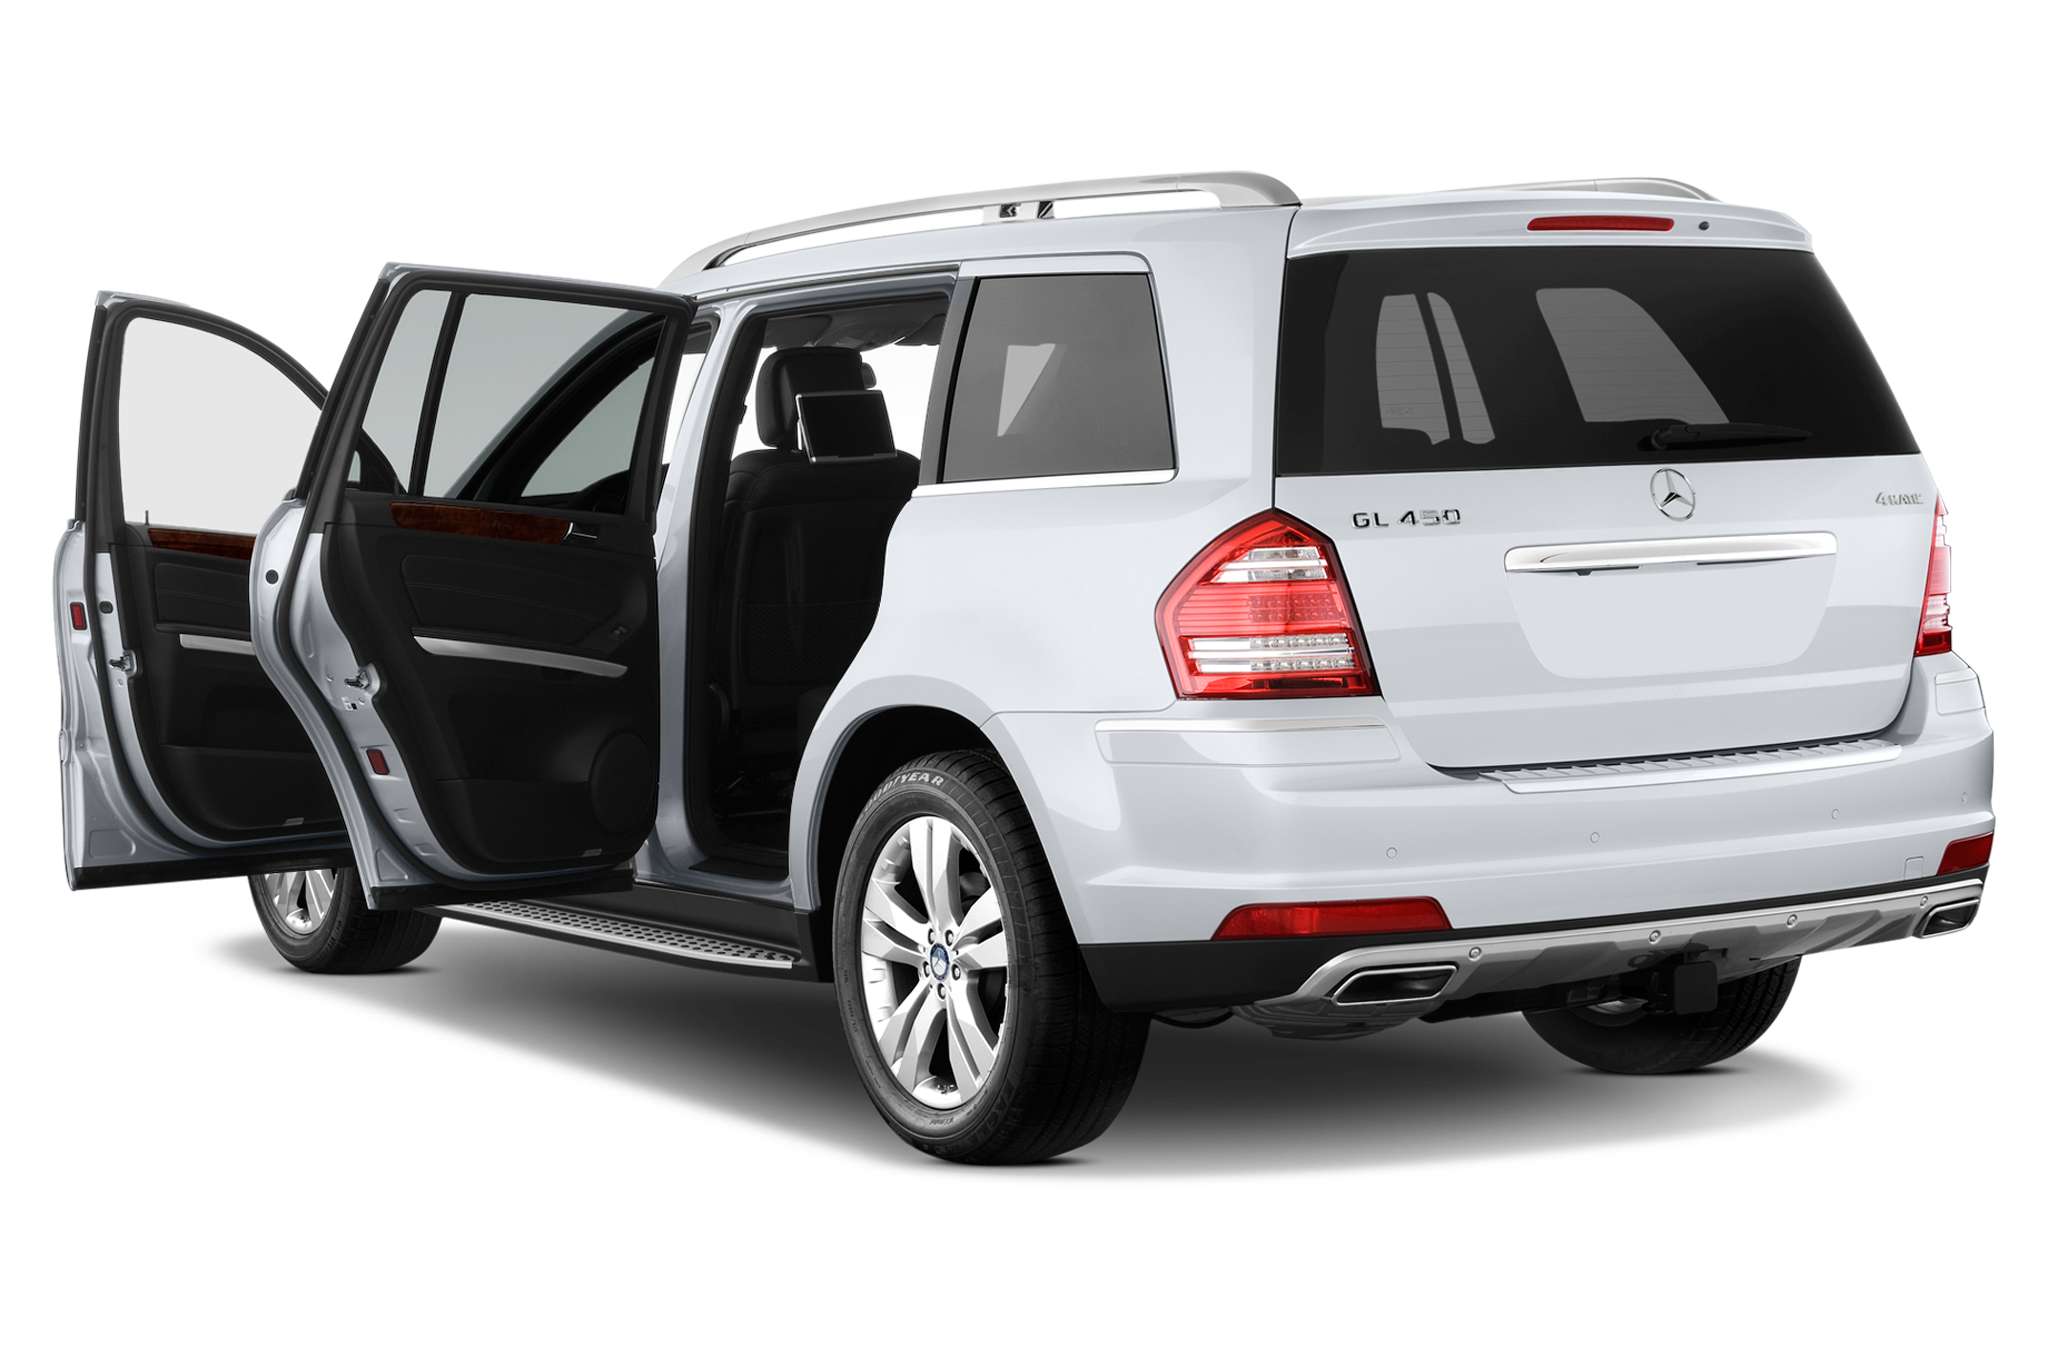 2012 Mercedes-Benz GL550 4Matic - Editors' Notebook ...